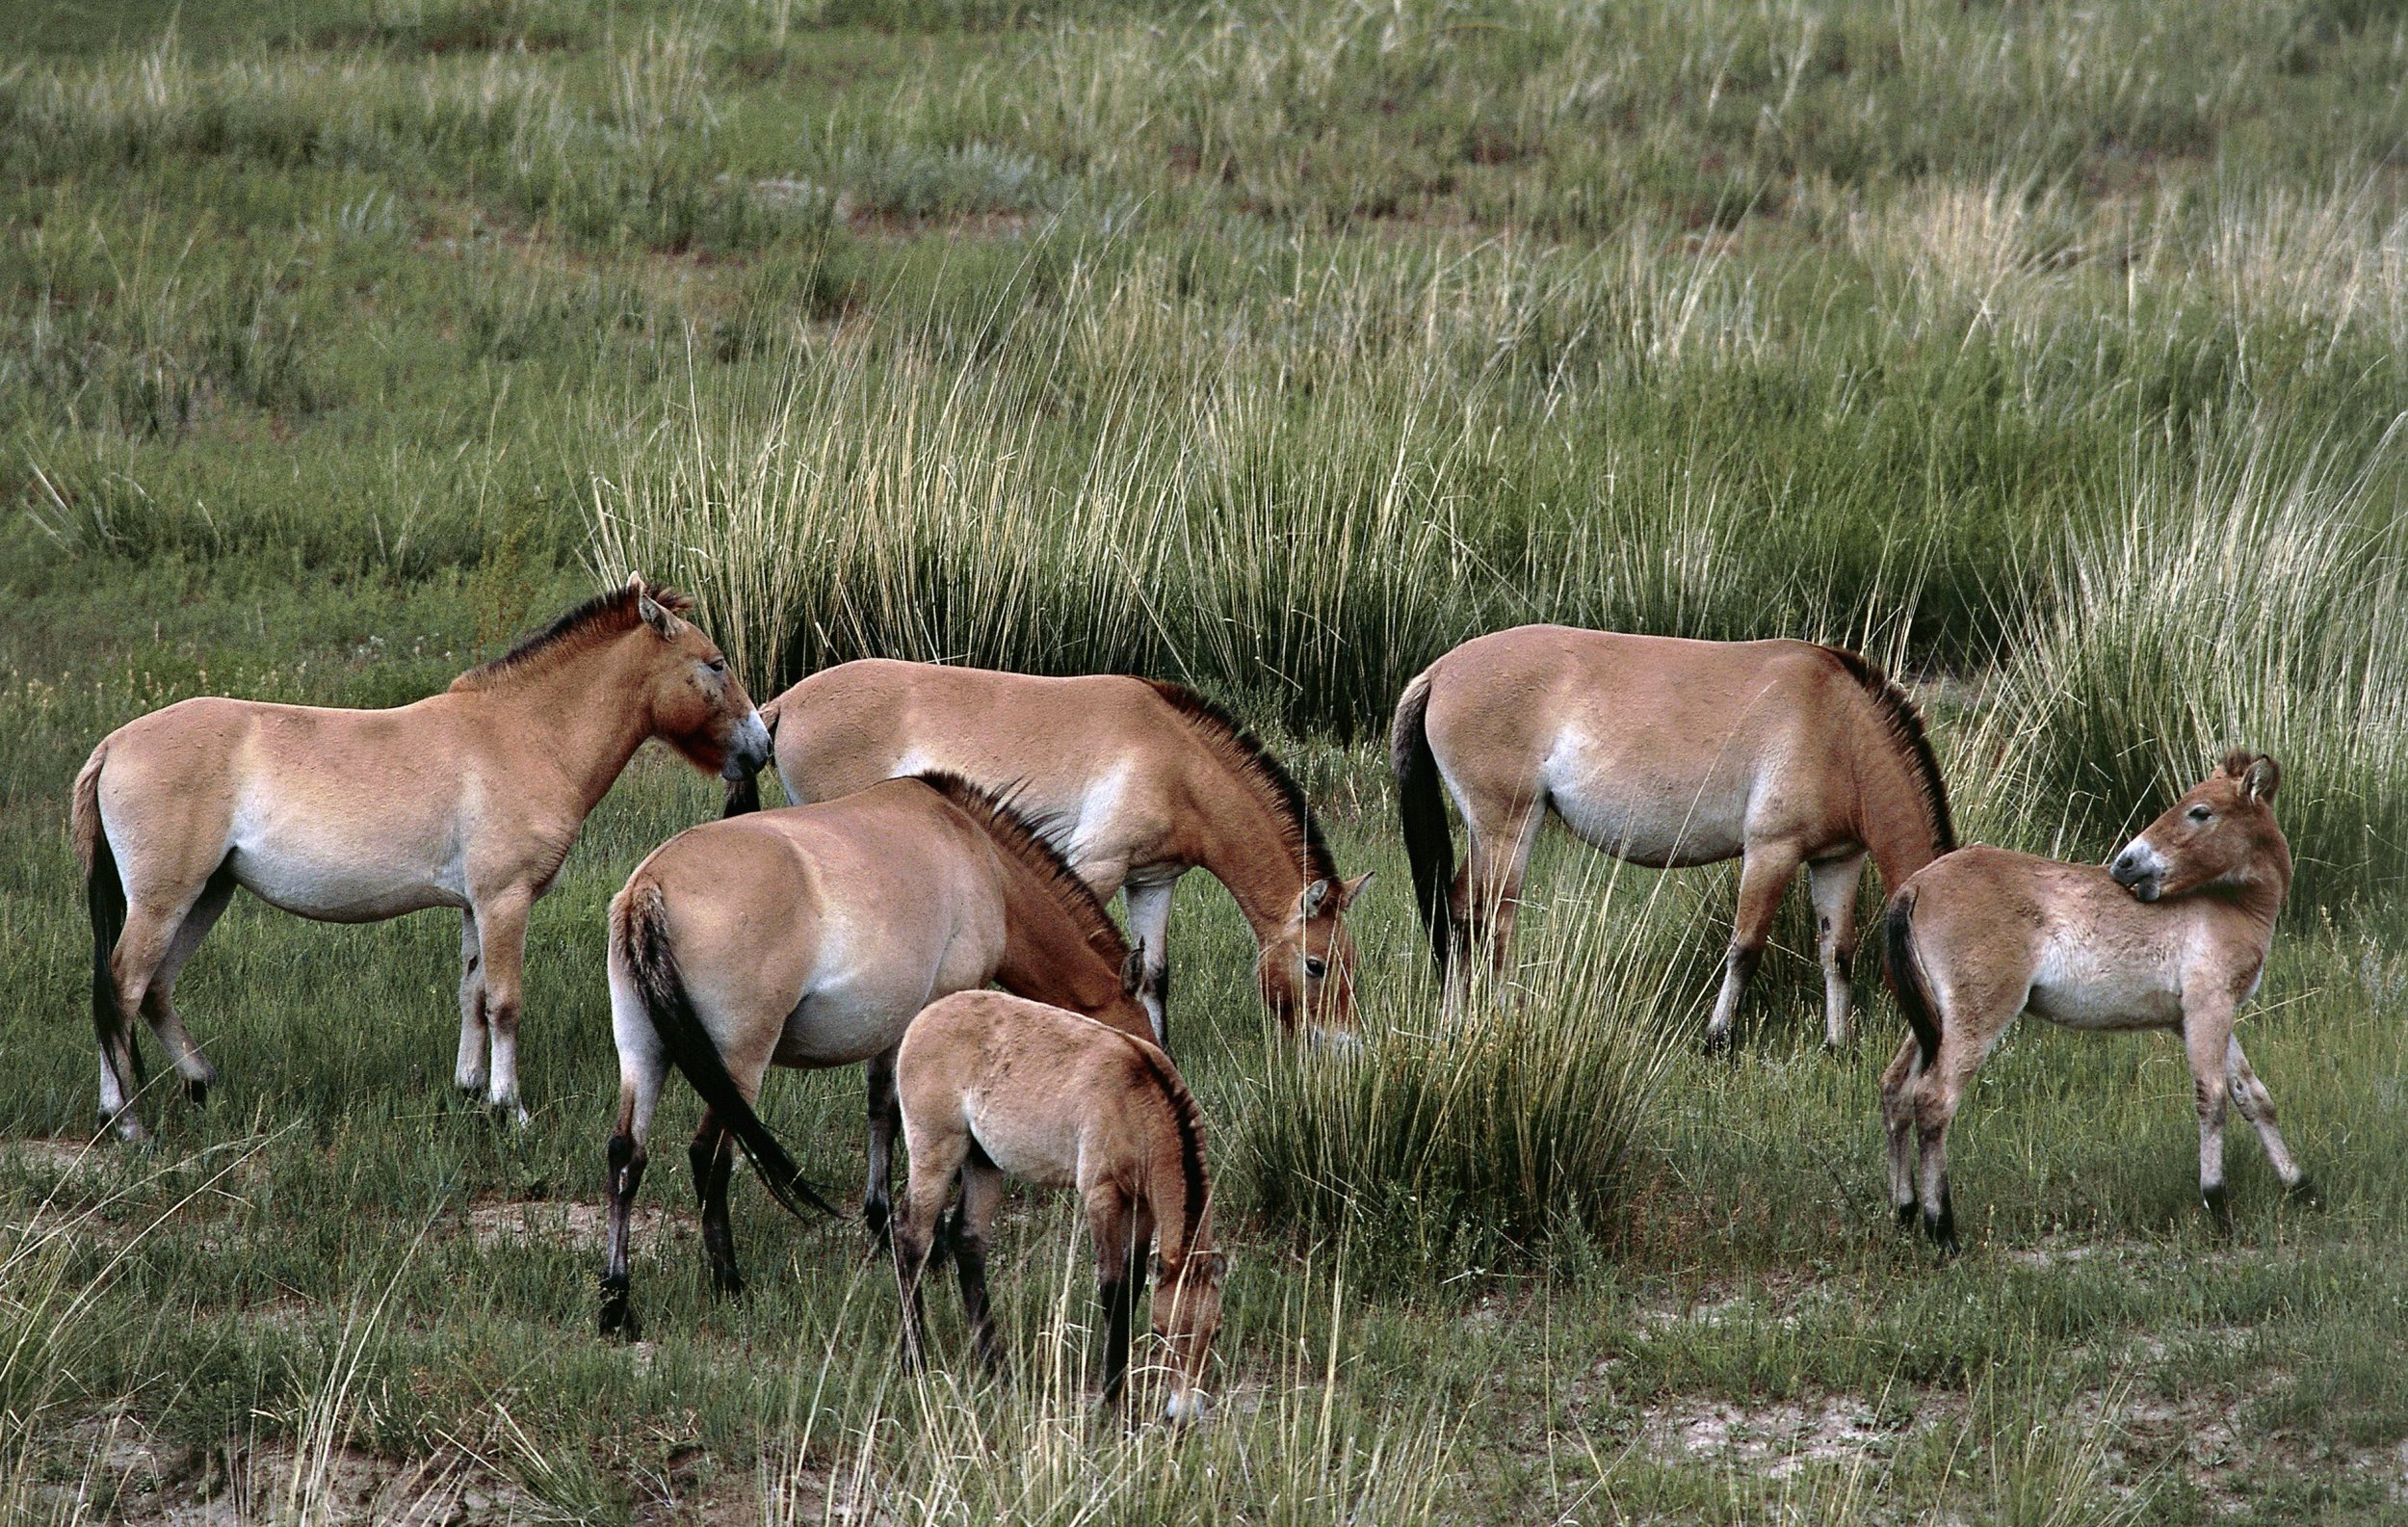 MONGOLIA - FEBRUARY 24: Przewalski's horse or takhi (Equus ferus przewalskii), Khustain Nuruu National Park, Mongolia. (Photo by DeAgostini/Getty Images)